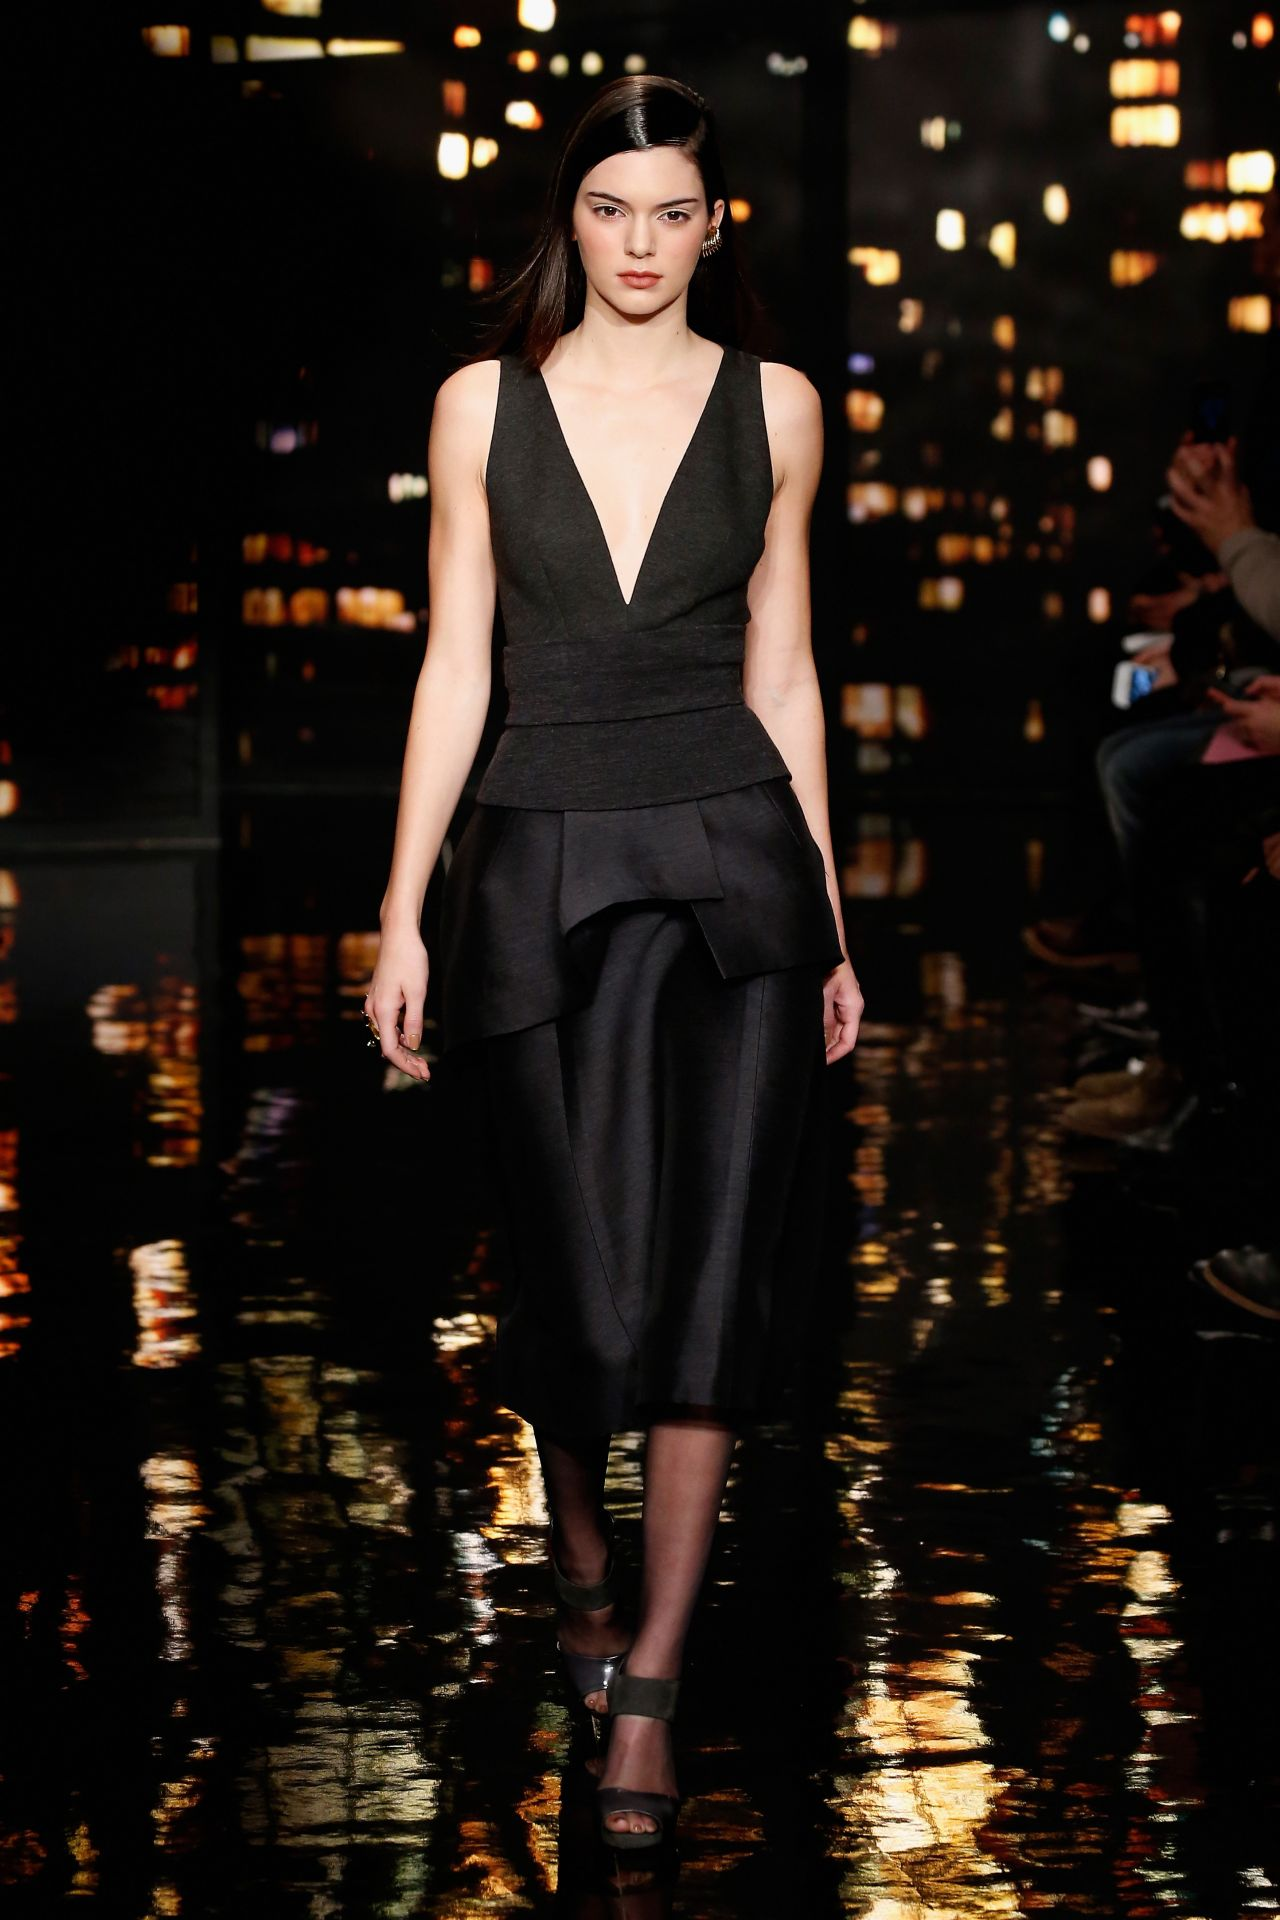 kendall-jenner-donna-karan-fall-2015-fashion-show_